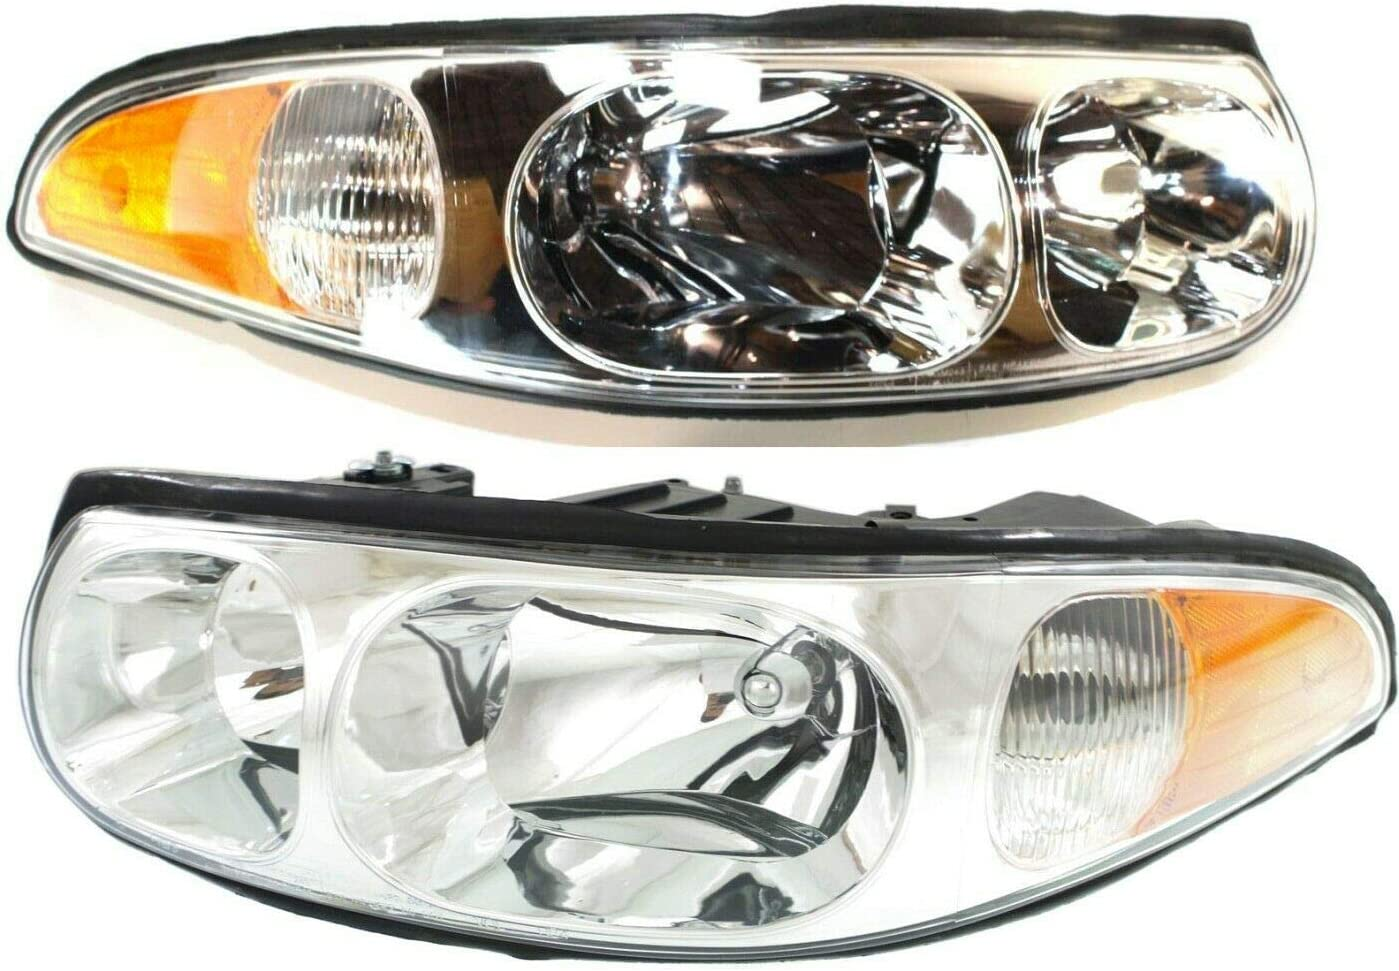 JENCH Headlight Set Compatible New Orleans Mall with Indefinitely Model LeSabre 2000-05 Custom